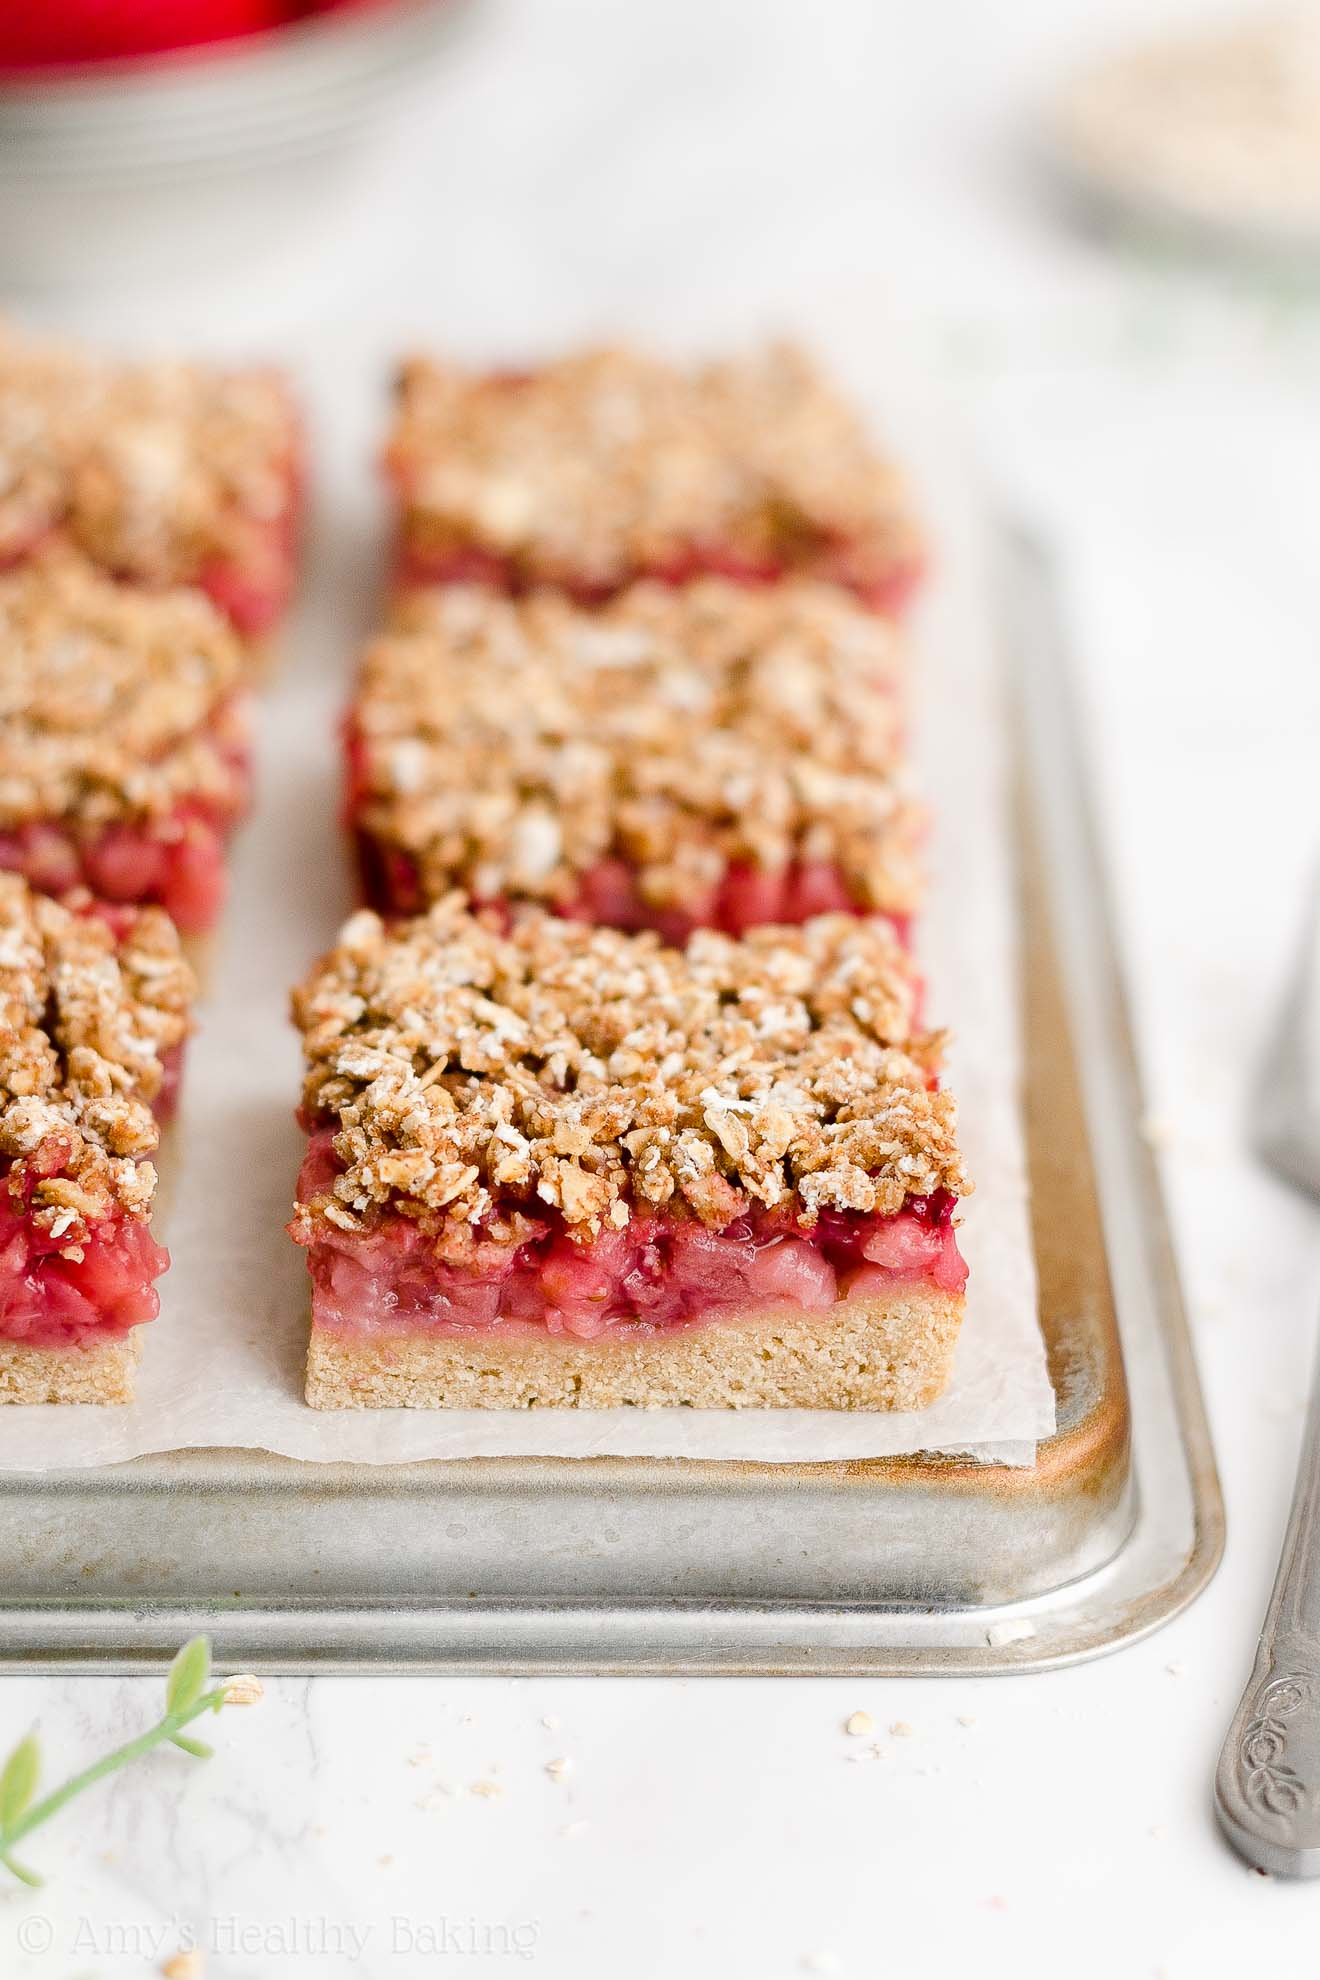 Best Healthy Clean Eating Low Calorie No Sugar Strawberry Oat Crumble Bars